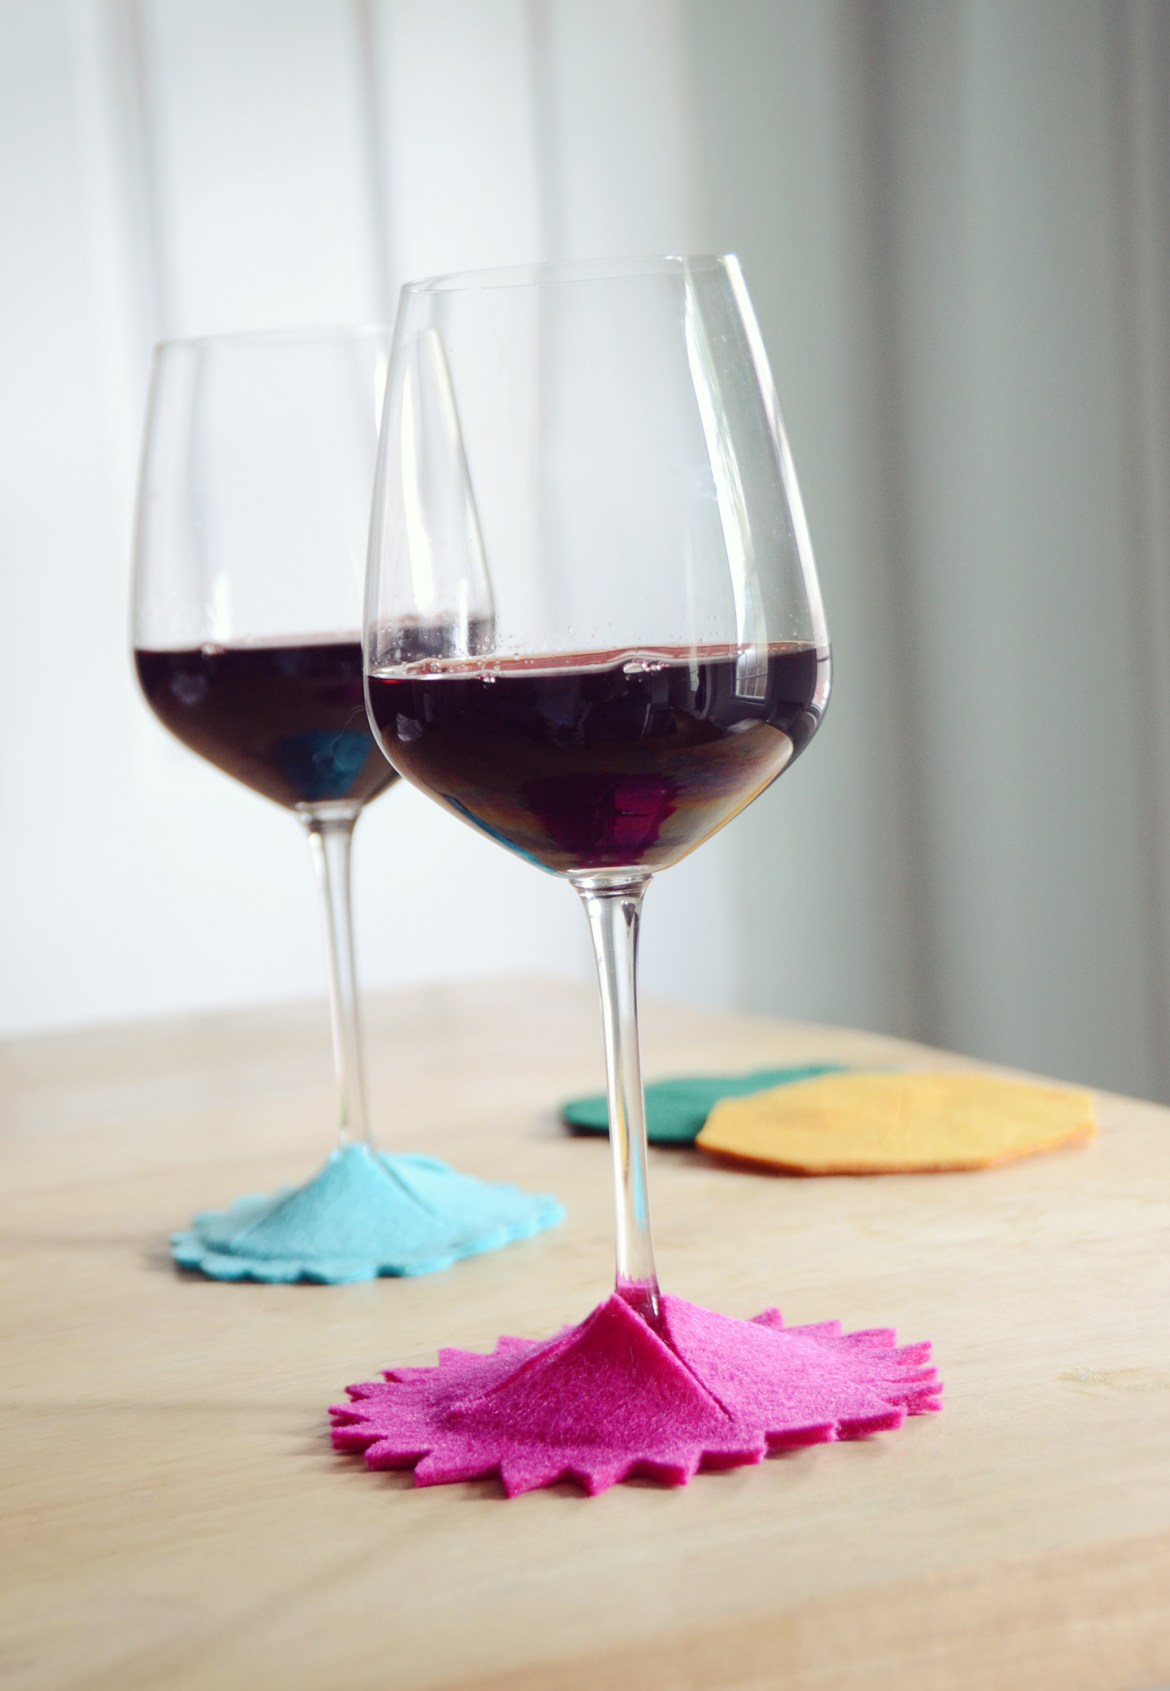 DIY No-Sew Felt Wine Glass Coasters